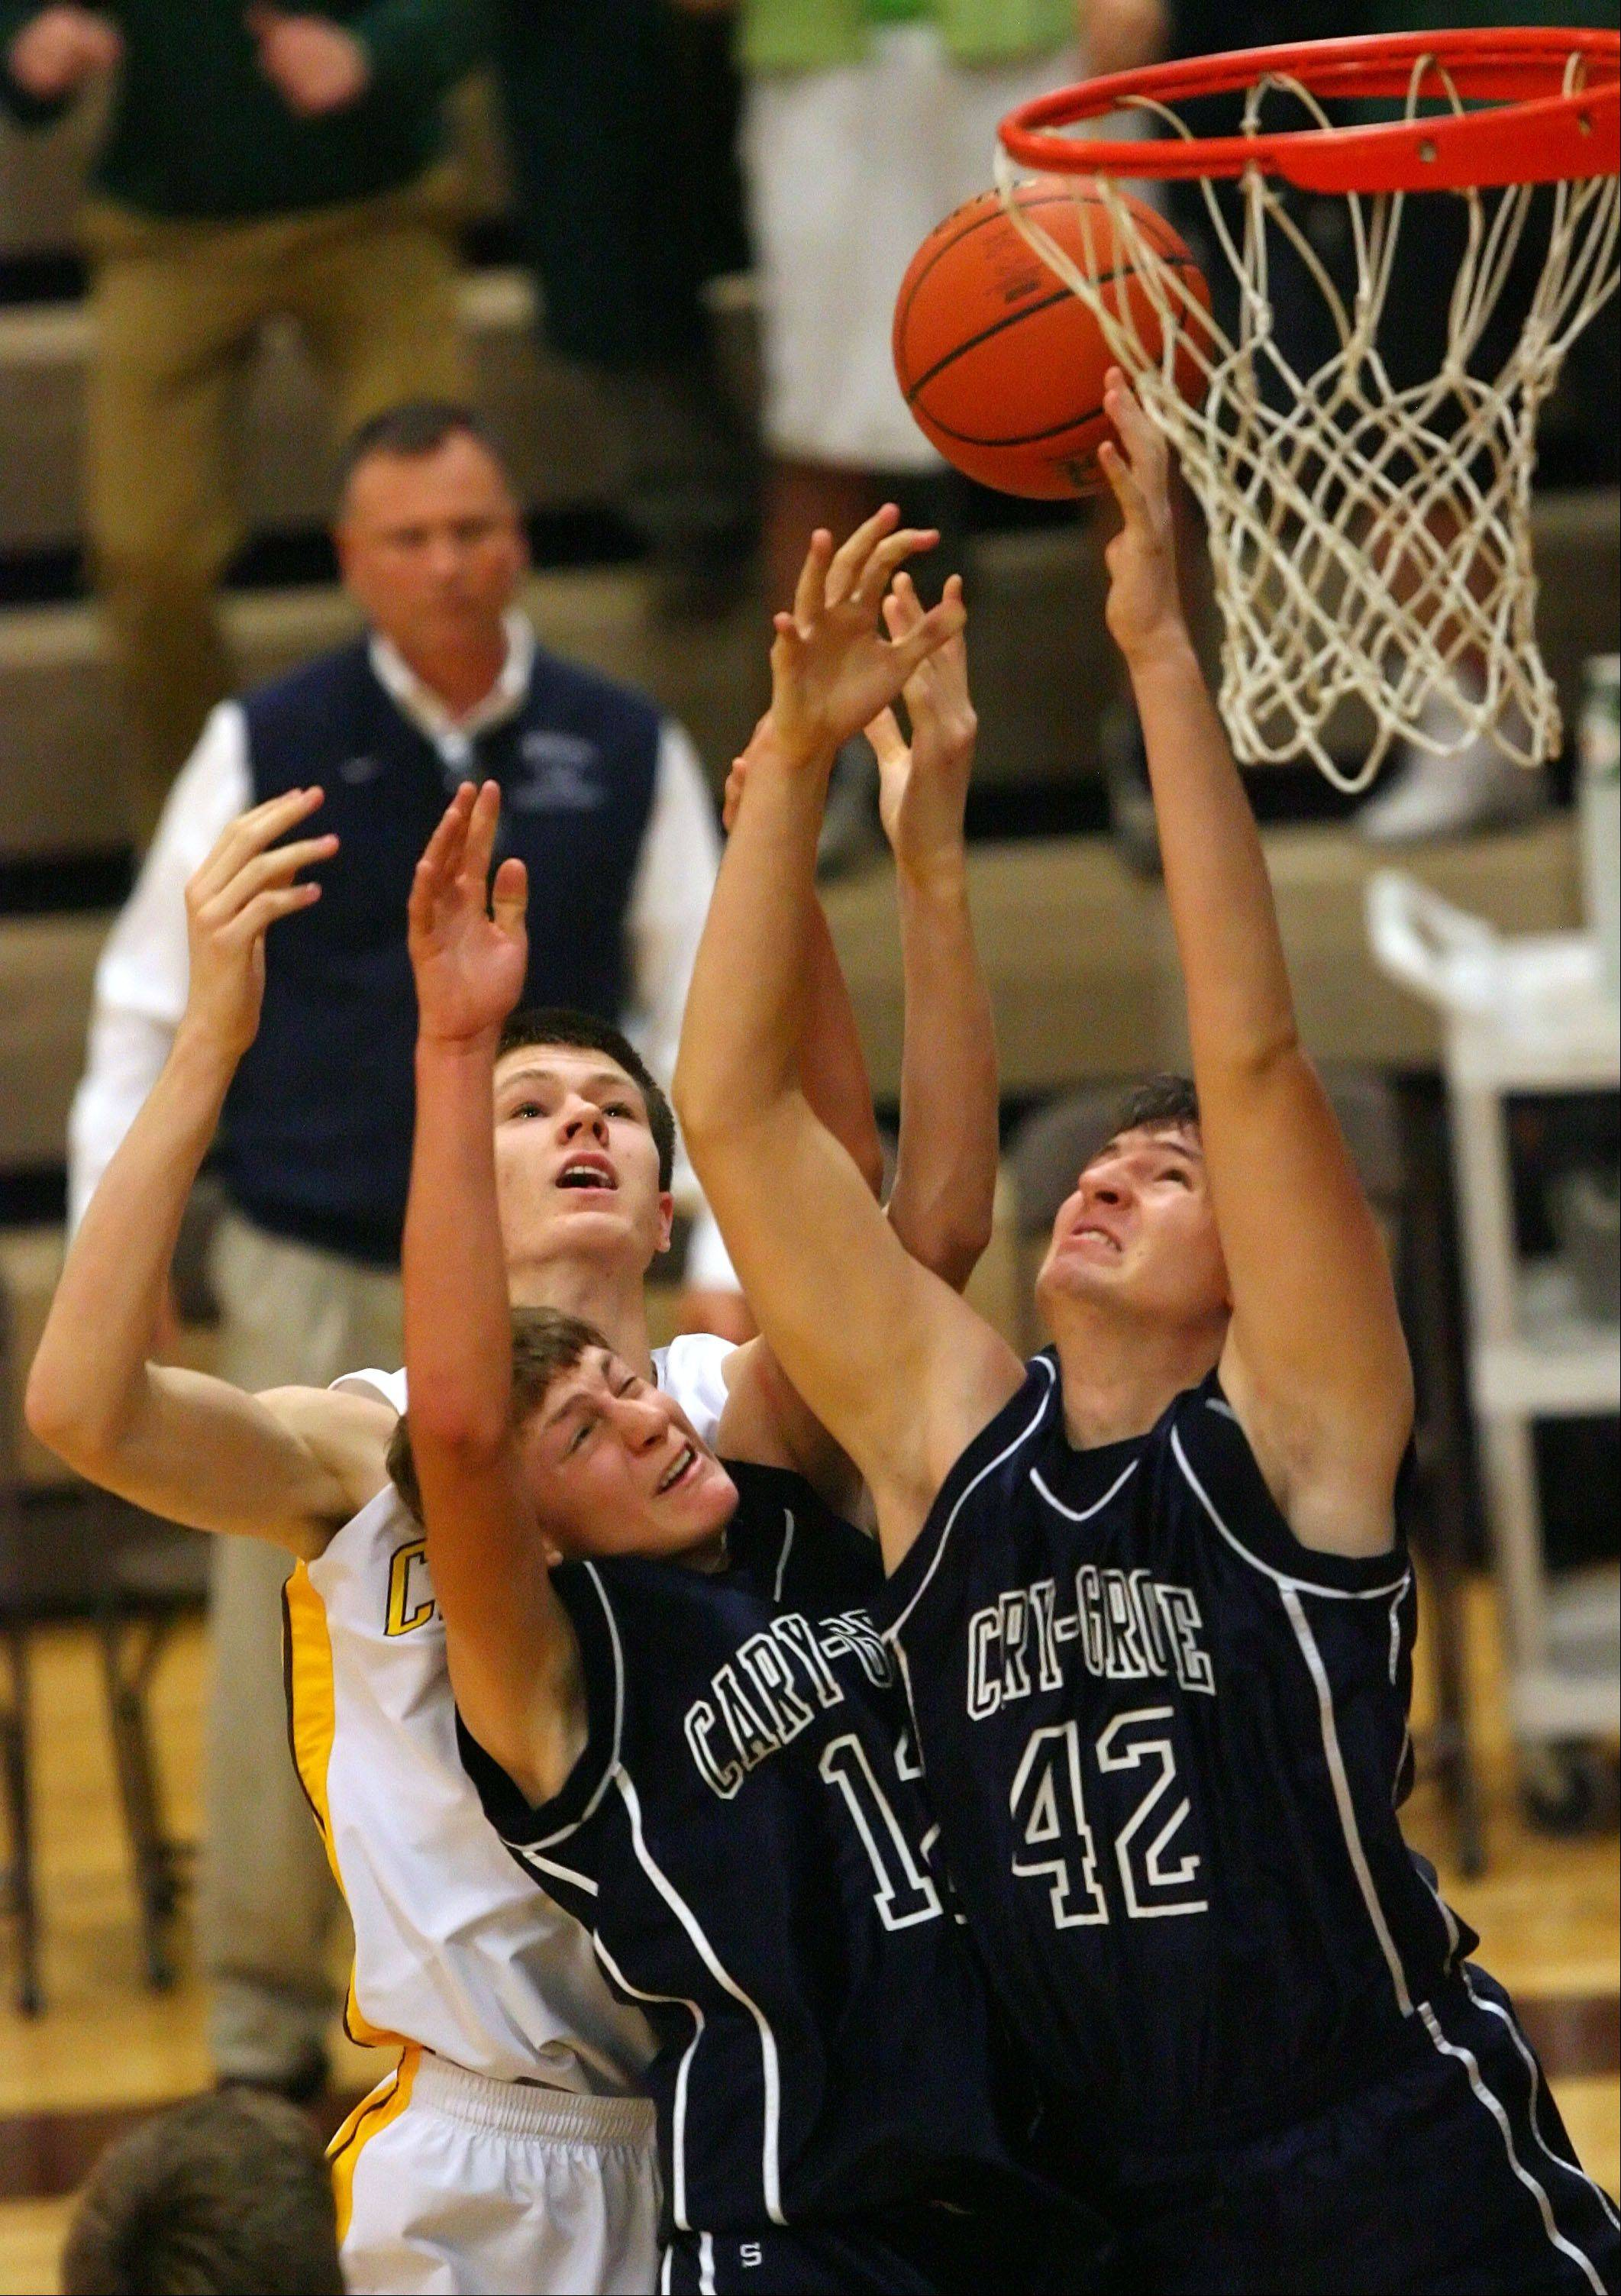 Carmel's Jack George, left, battles for a rebound with Cary-Grove's Jason Gregoire and Alex Crowley, right.